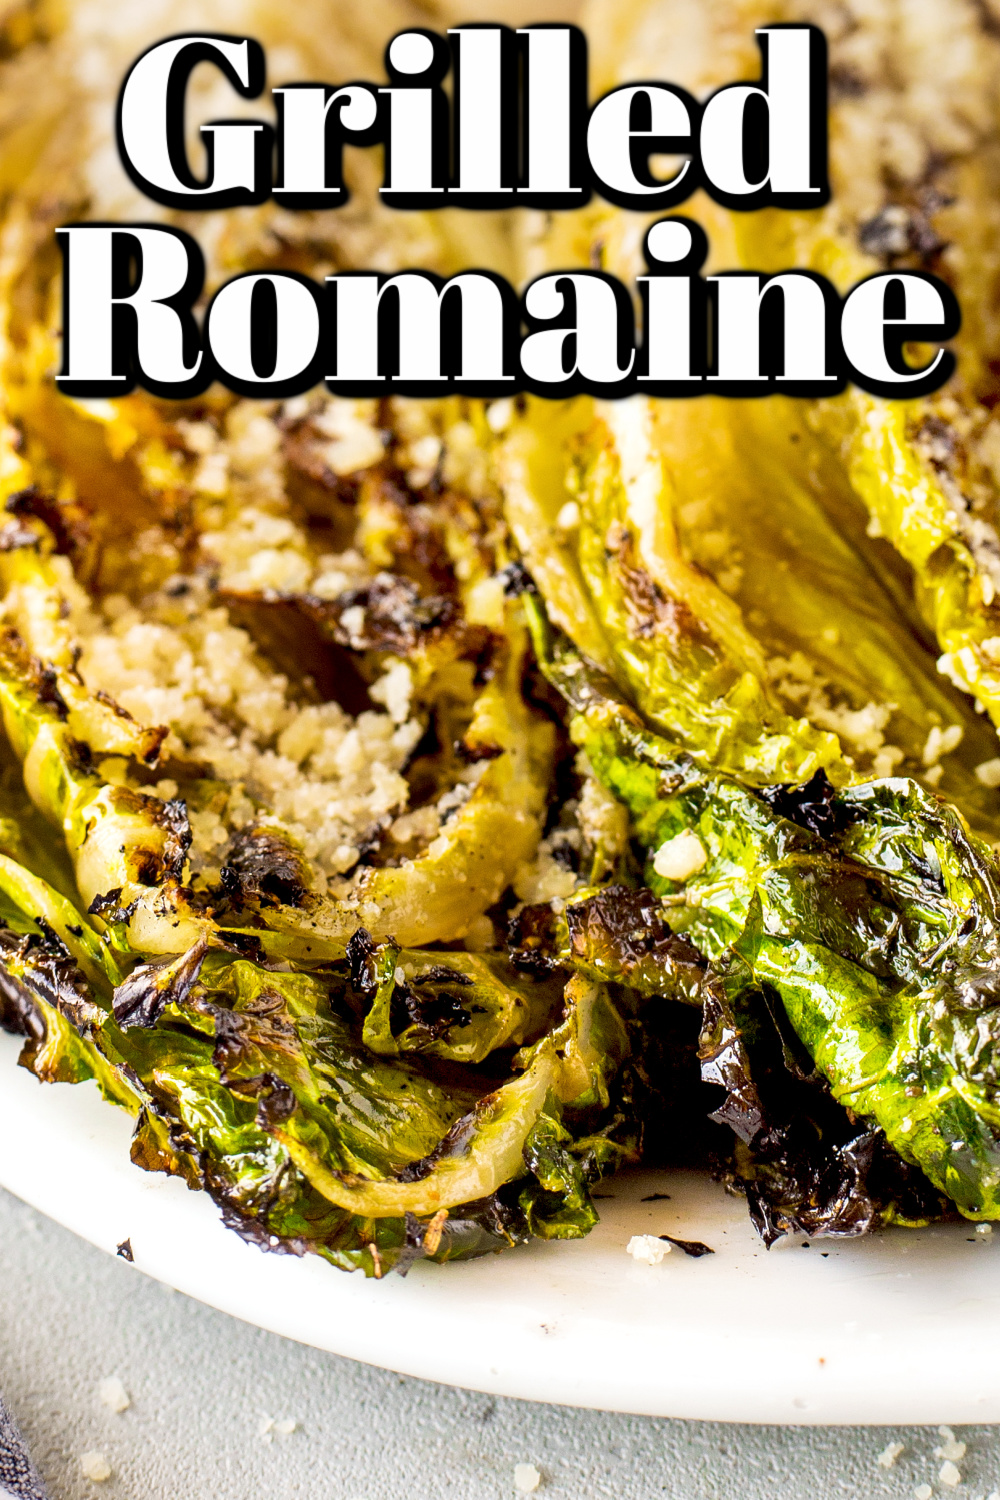 Grilled Romaine Lettuce might be a little unusual, but it is a special dish that I know you will love!